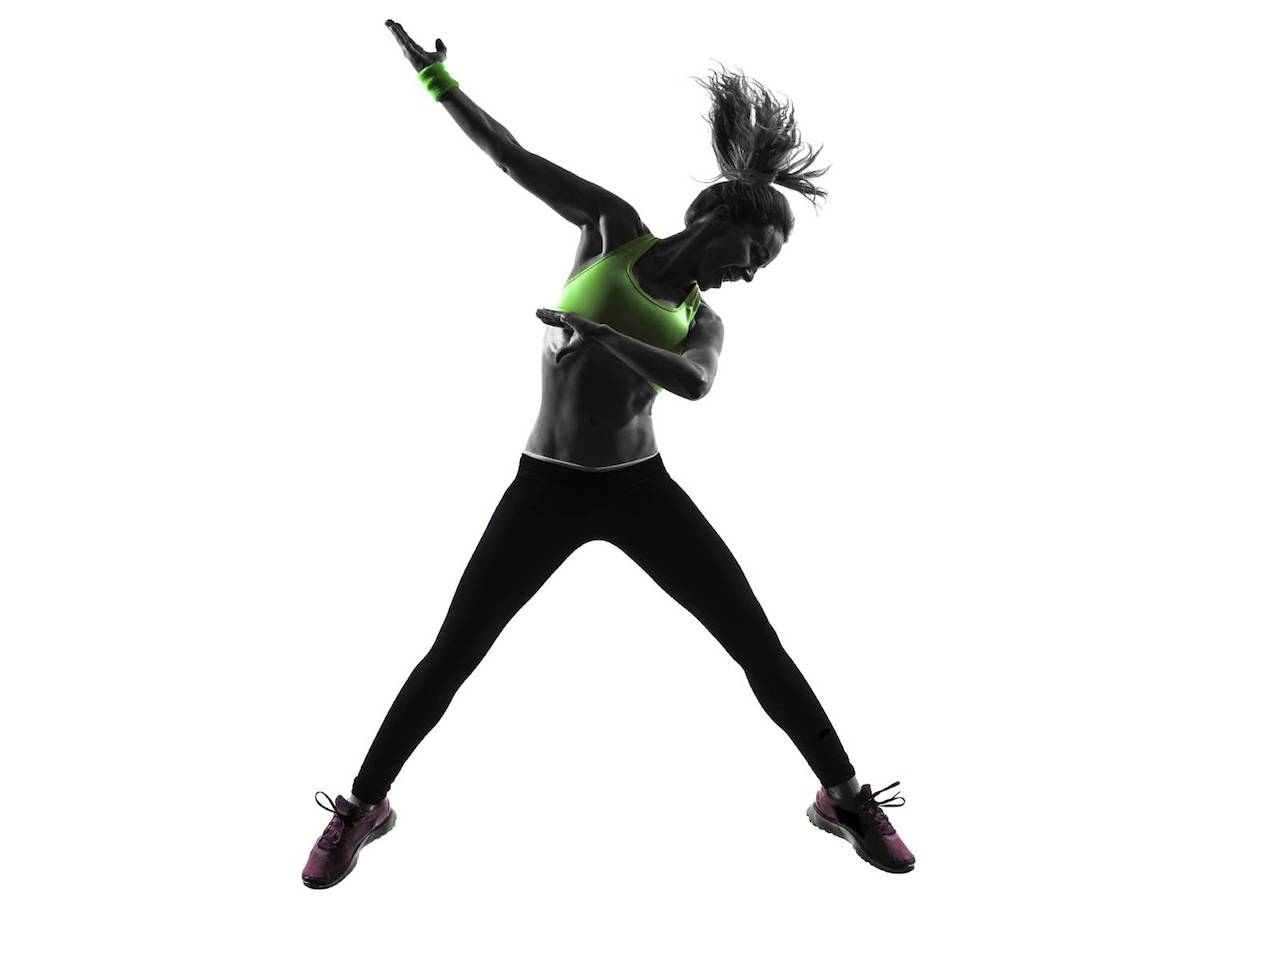 Zumba 3d fitness studio fitness club personal trainer for Lady fitness